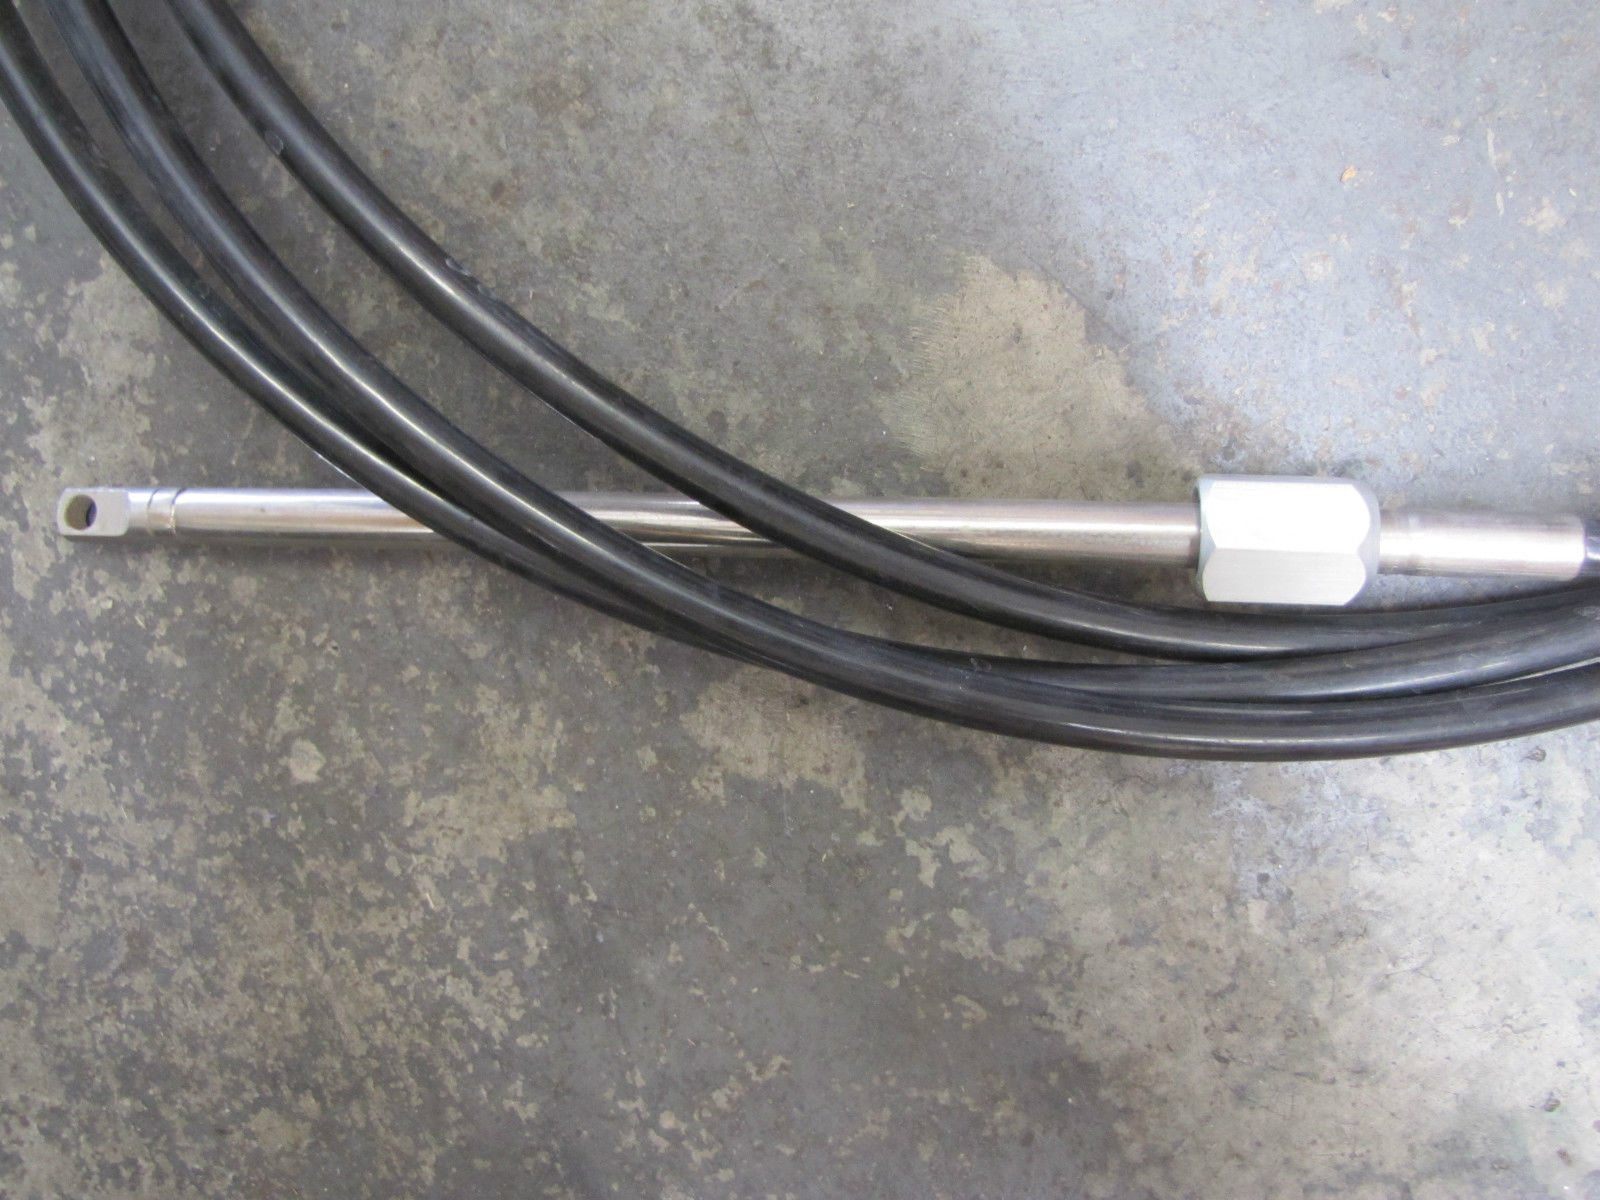 New Morse Steering Cable M0963 Amrc 24ft Express Marine